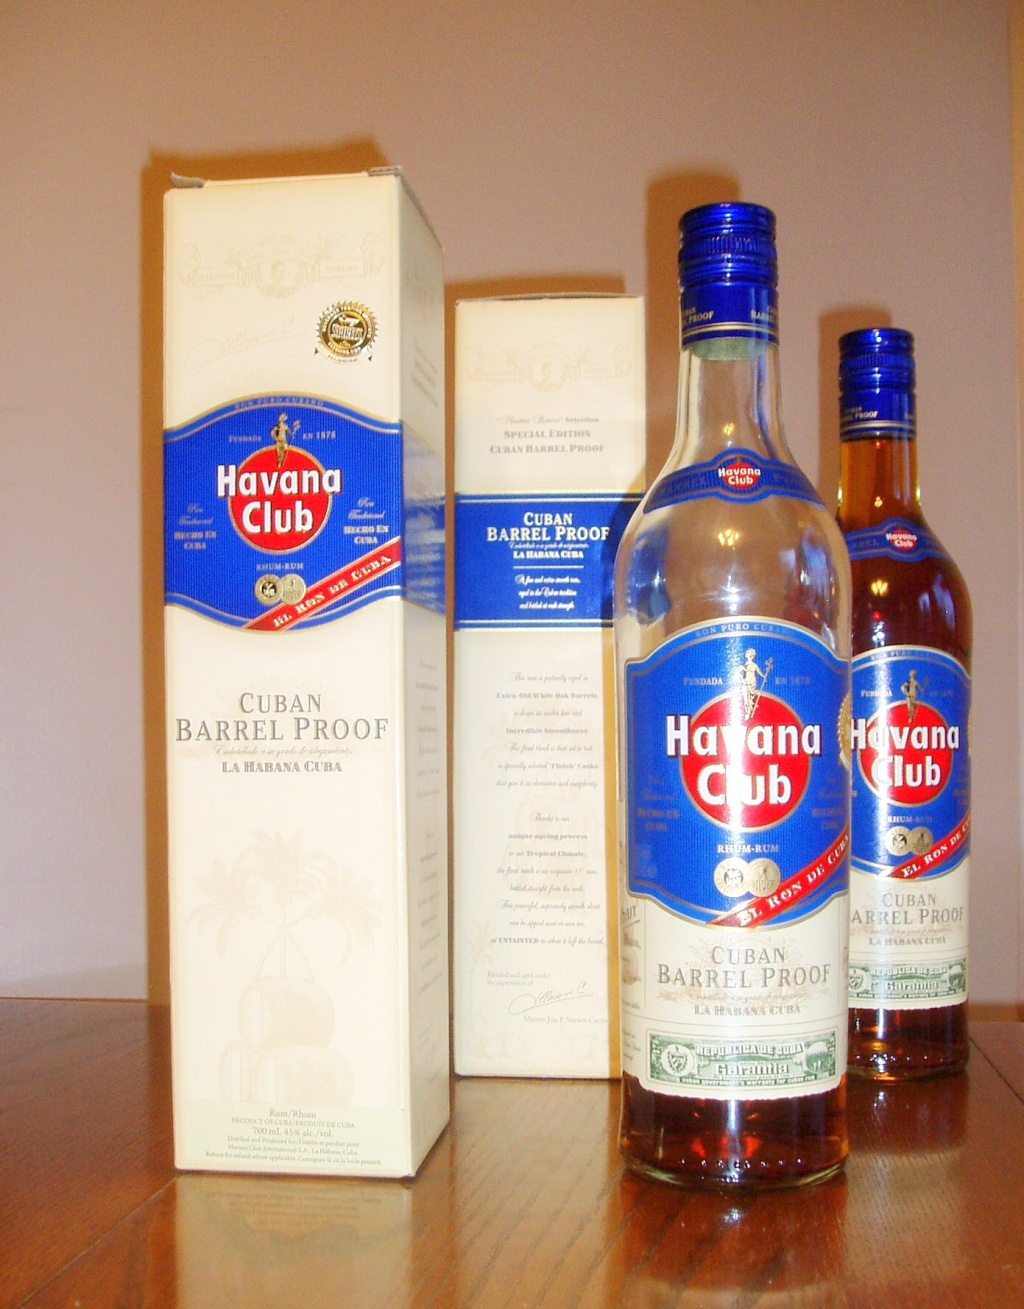 Havana Club Barrel Proof